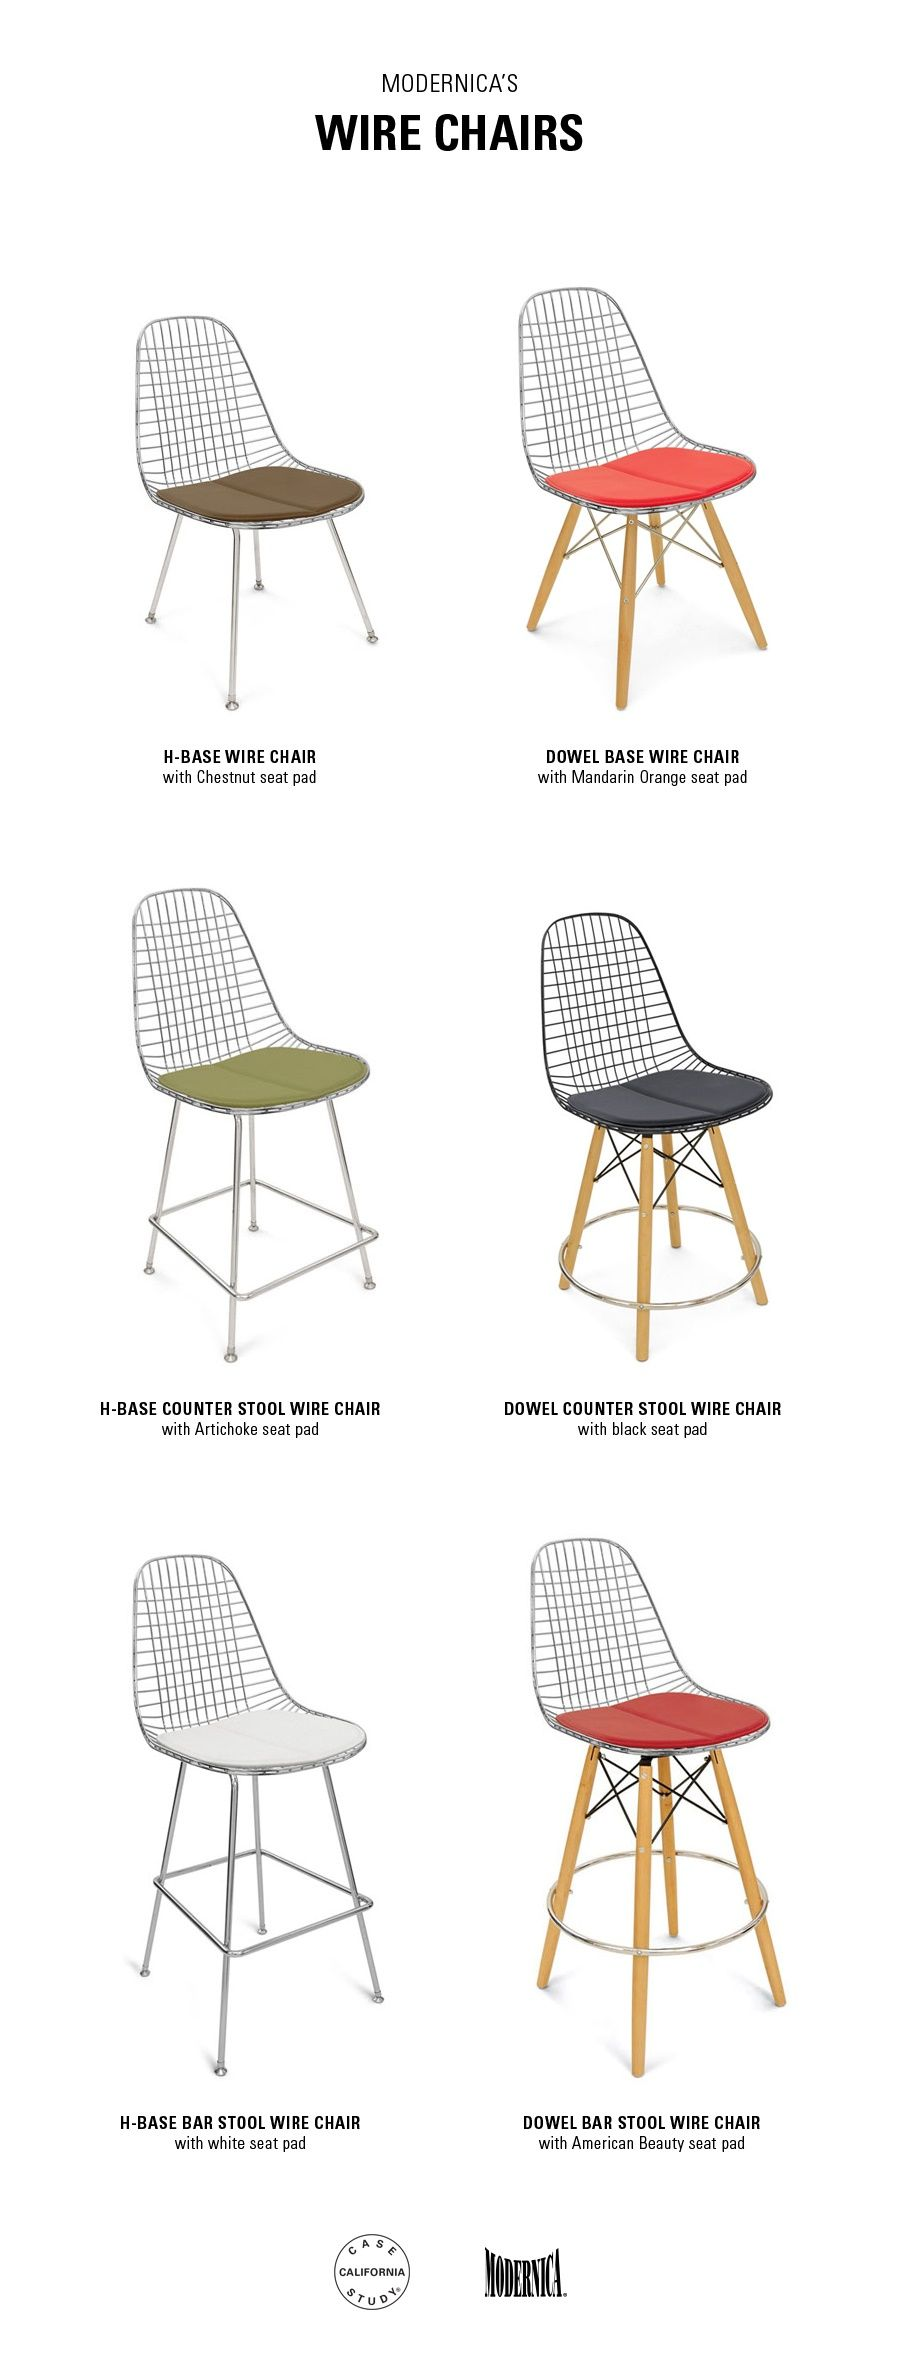 Modernica Case Study Wire Chairs, Counter Stool, And Bar Stools